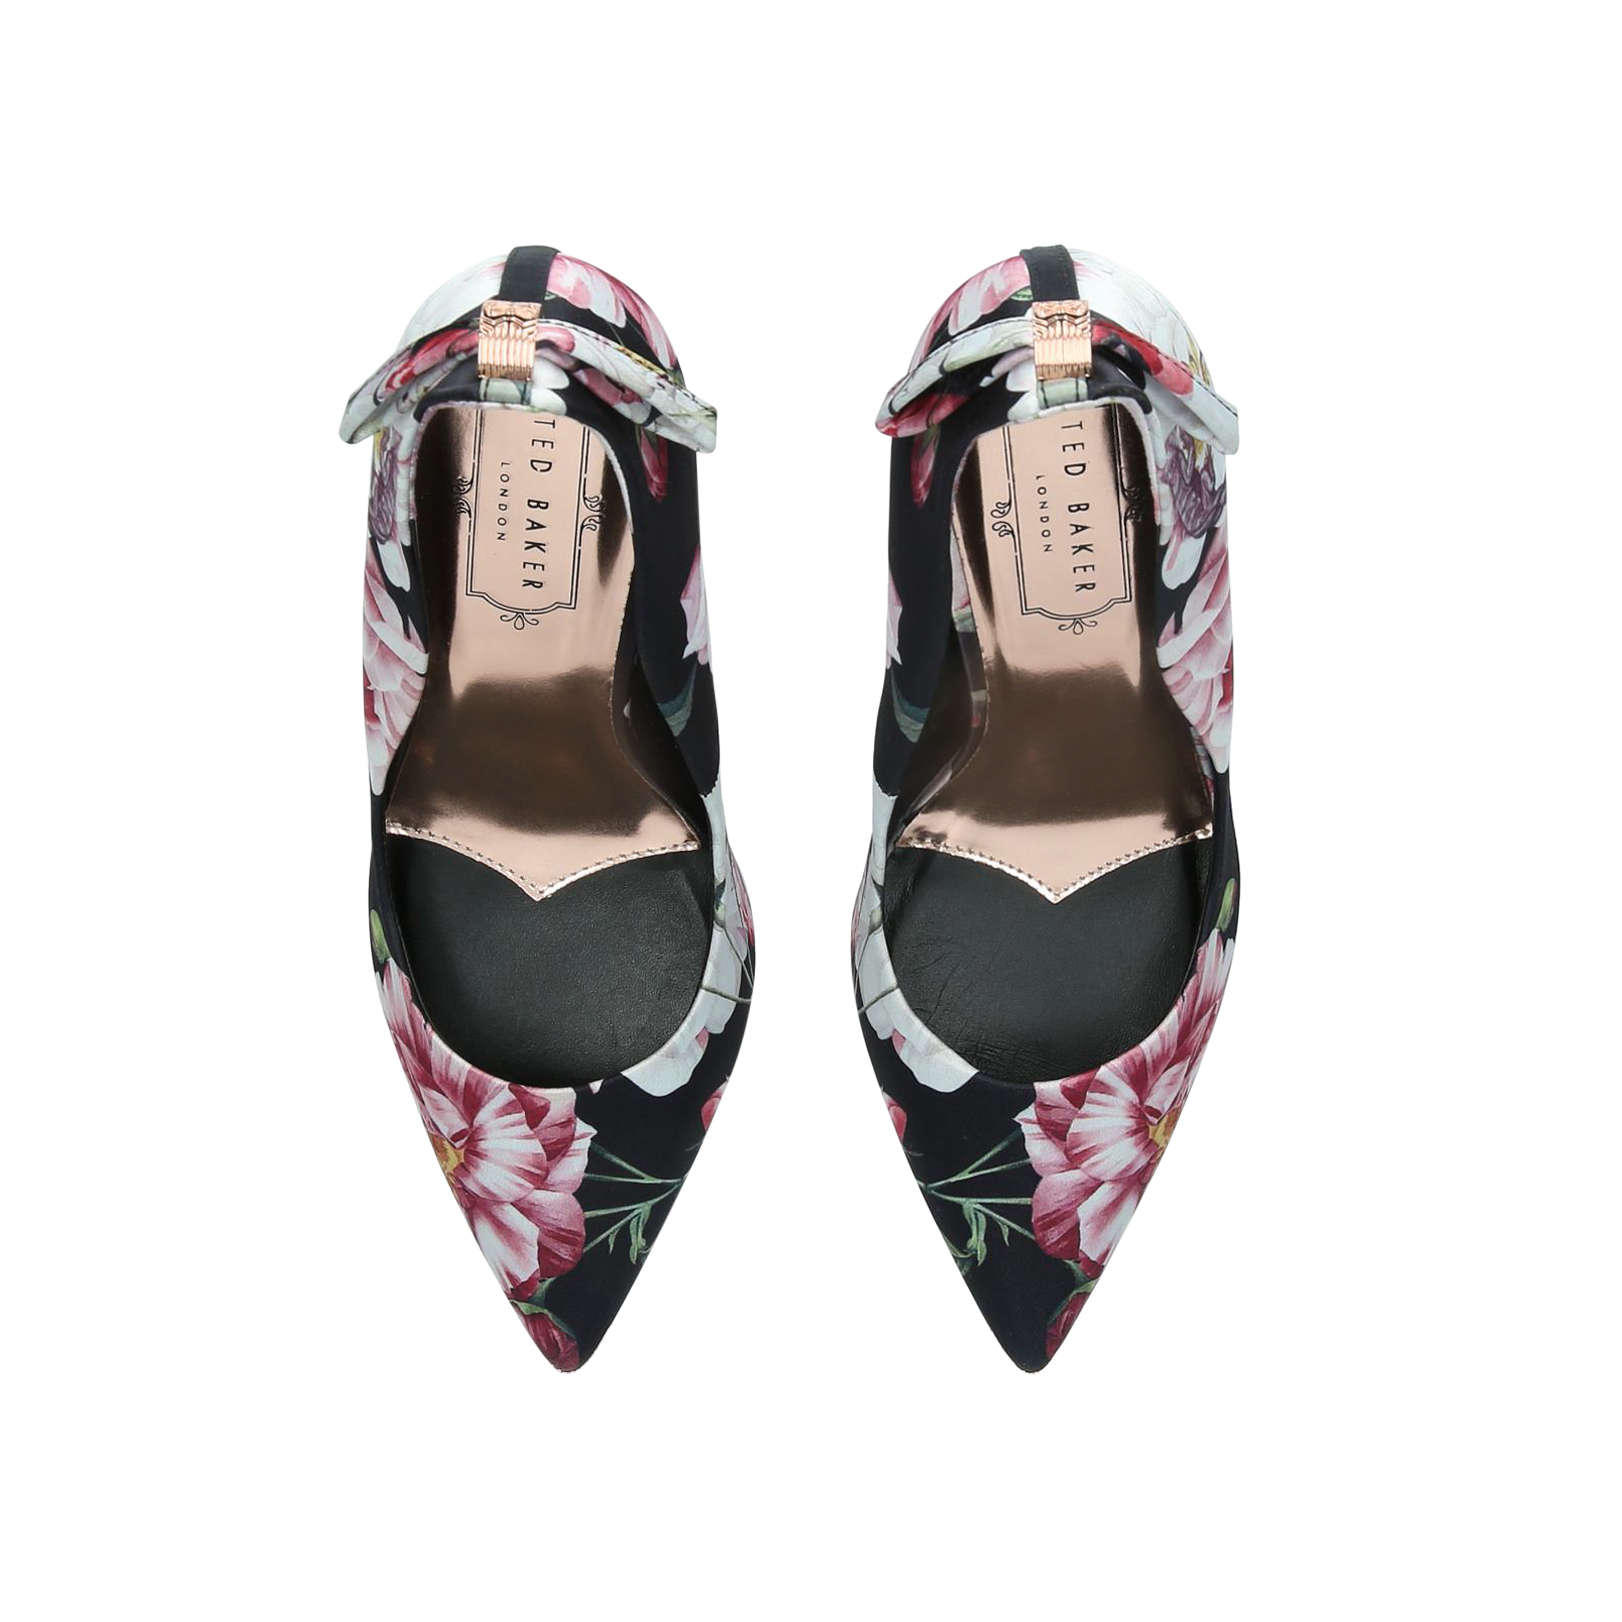 4a67c4461 LIVLIAP by TED BAKER